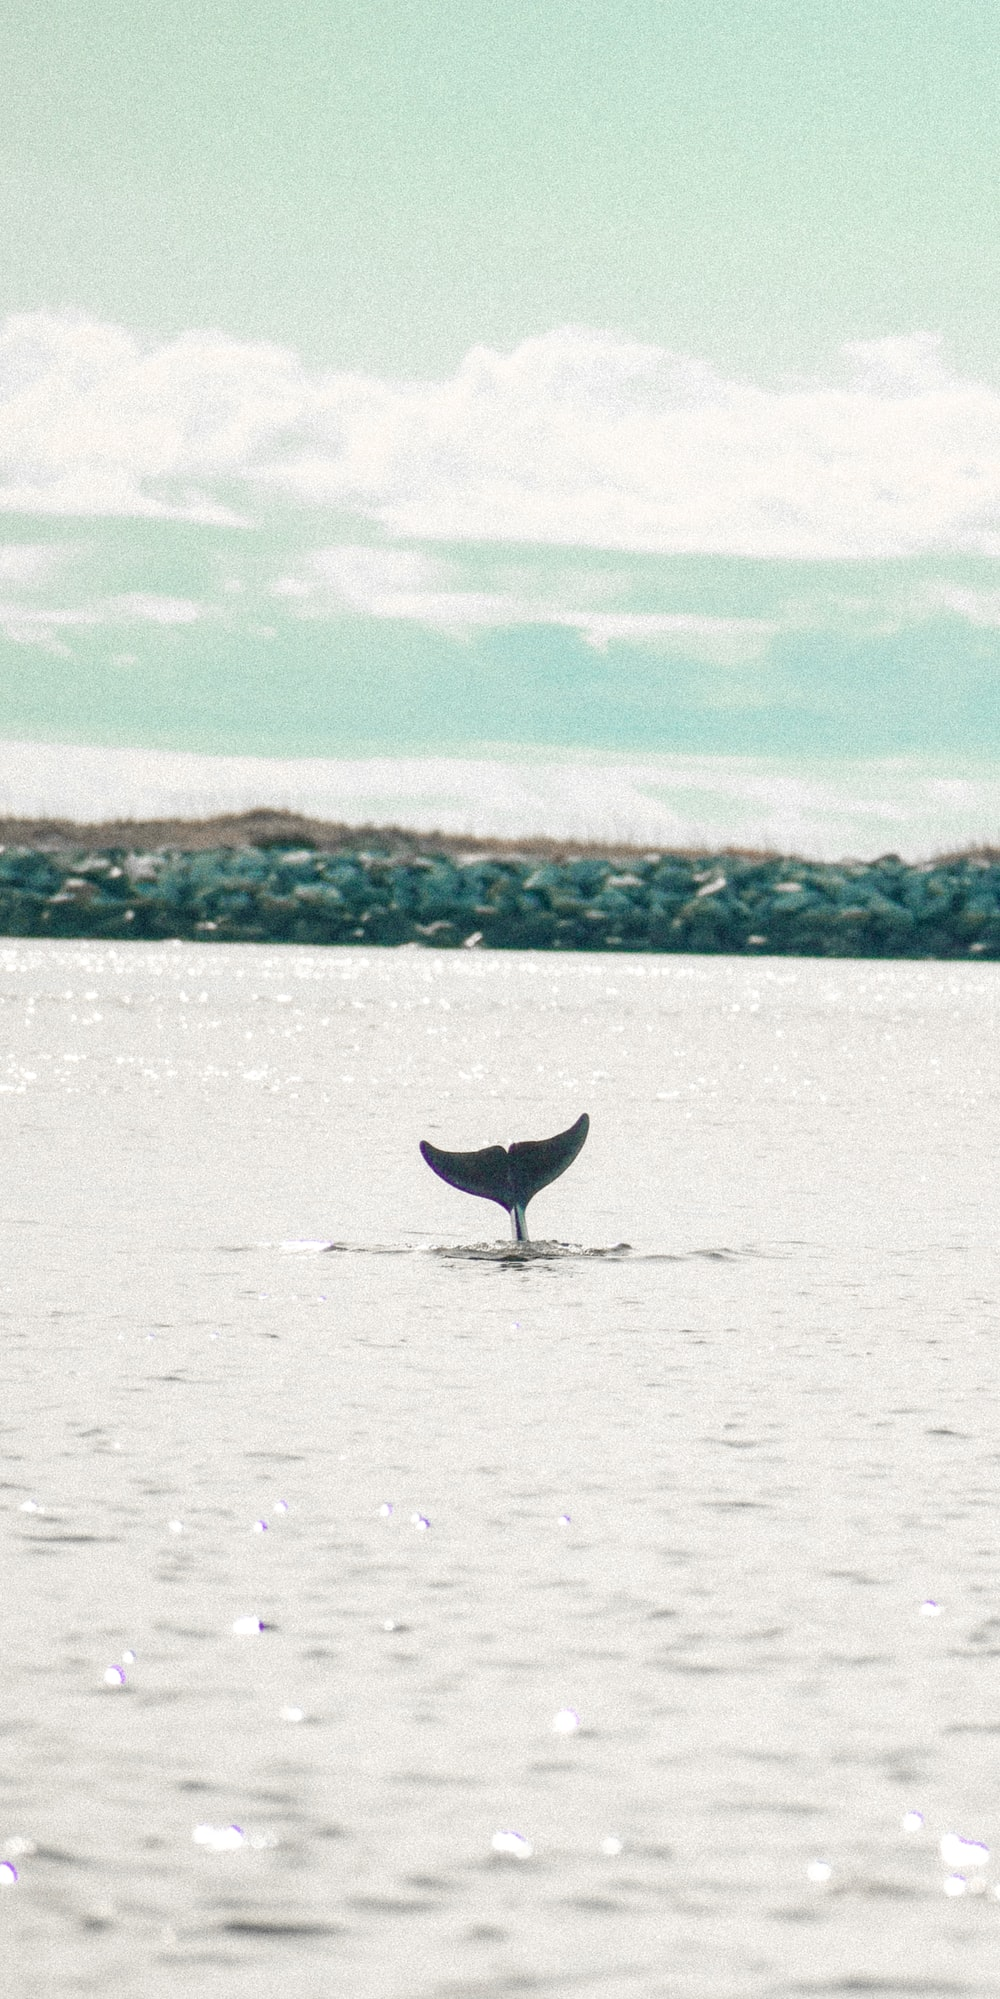 purple whale on body of water during daytime